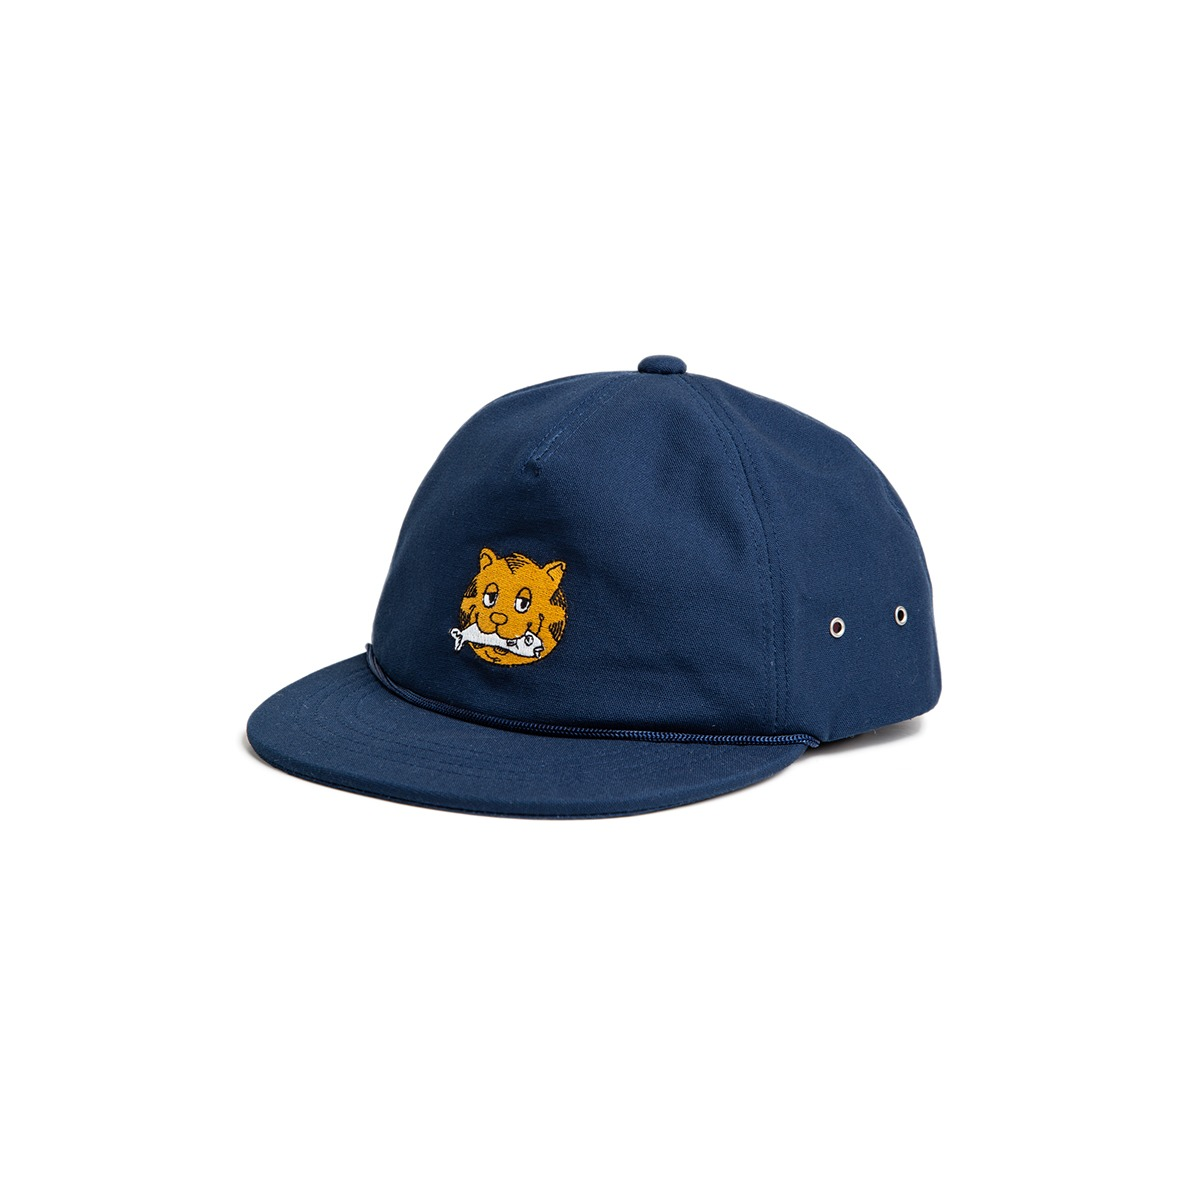 [BIG WAVE] FINE EMBROIDERY CAP 'NAVY'